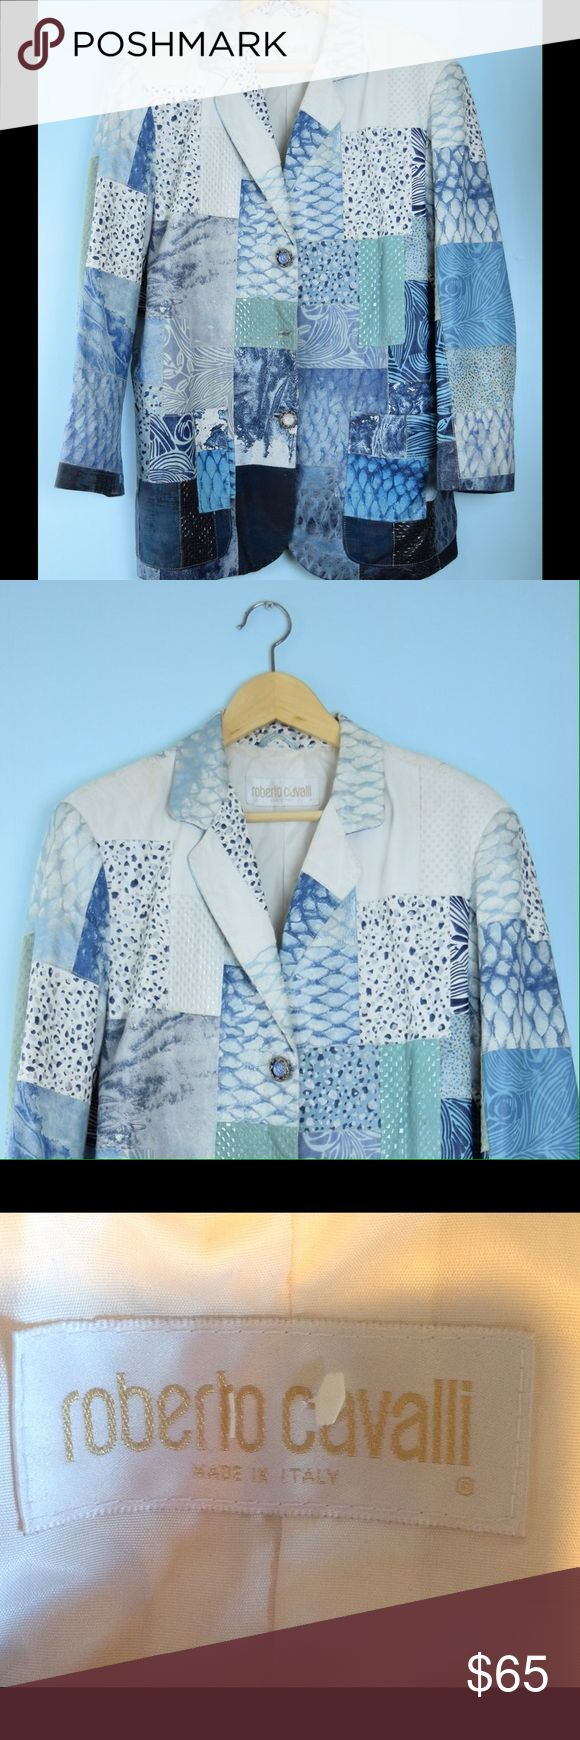 ROBERTO CAVALLI blue white leather jacket XS ROBERTO CAVALLI blue white leather jacket XS, 100% leather, lined, no care label, dry clean ( needs a clean) one button missing, length 30 inches, bust 40 inches Roberto Cavalli Jackets & Coats